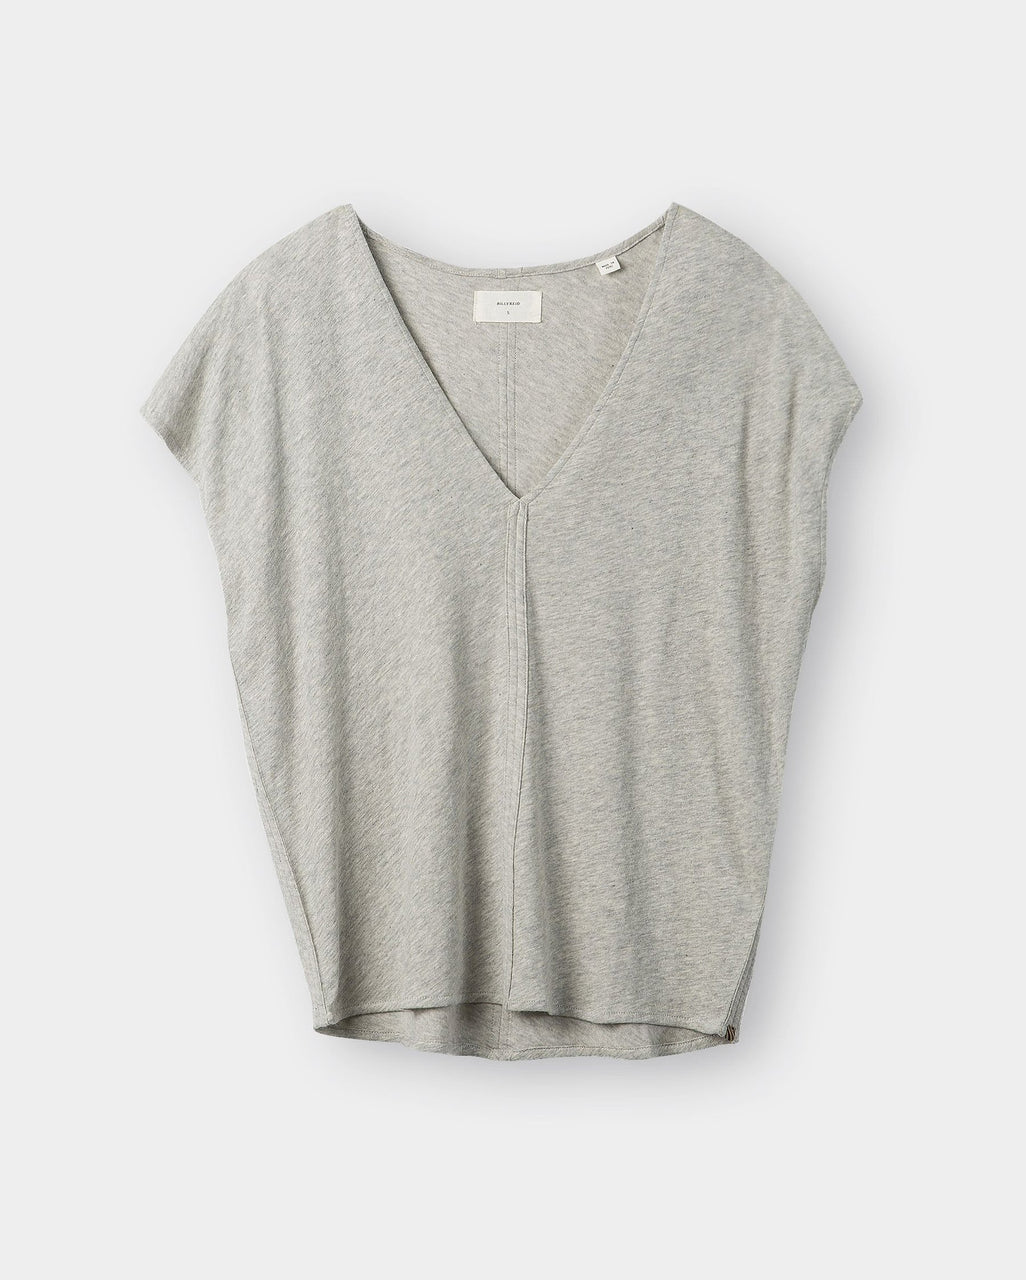 Billy Reid Cotton Cashmere Tee